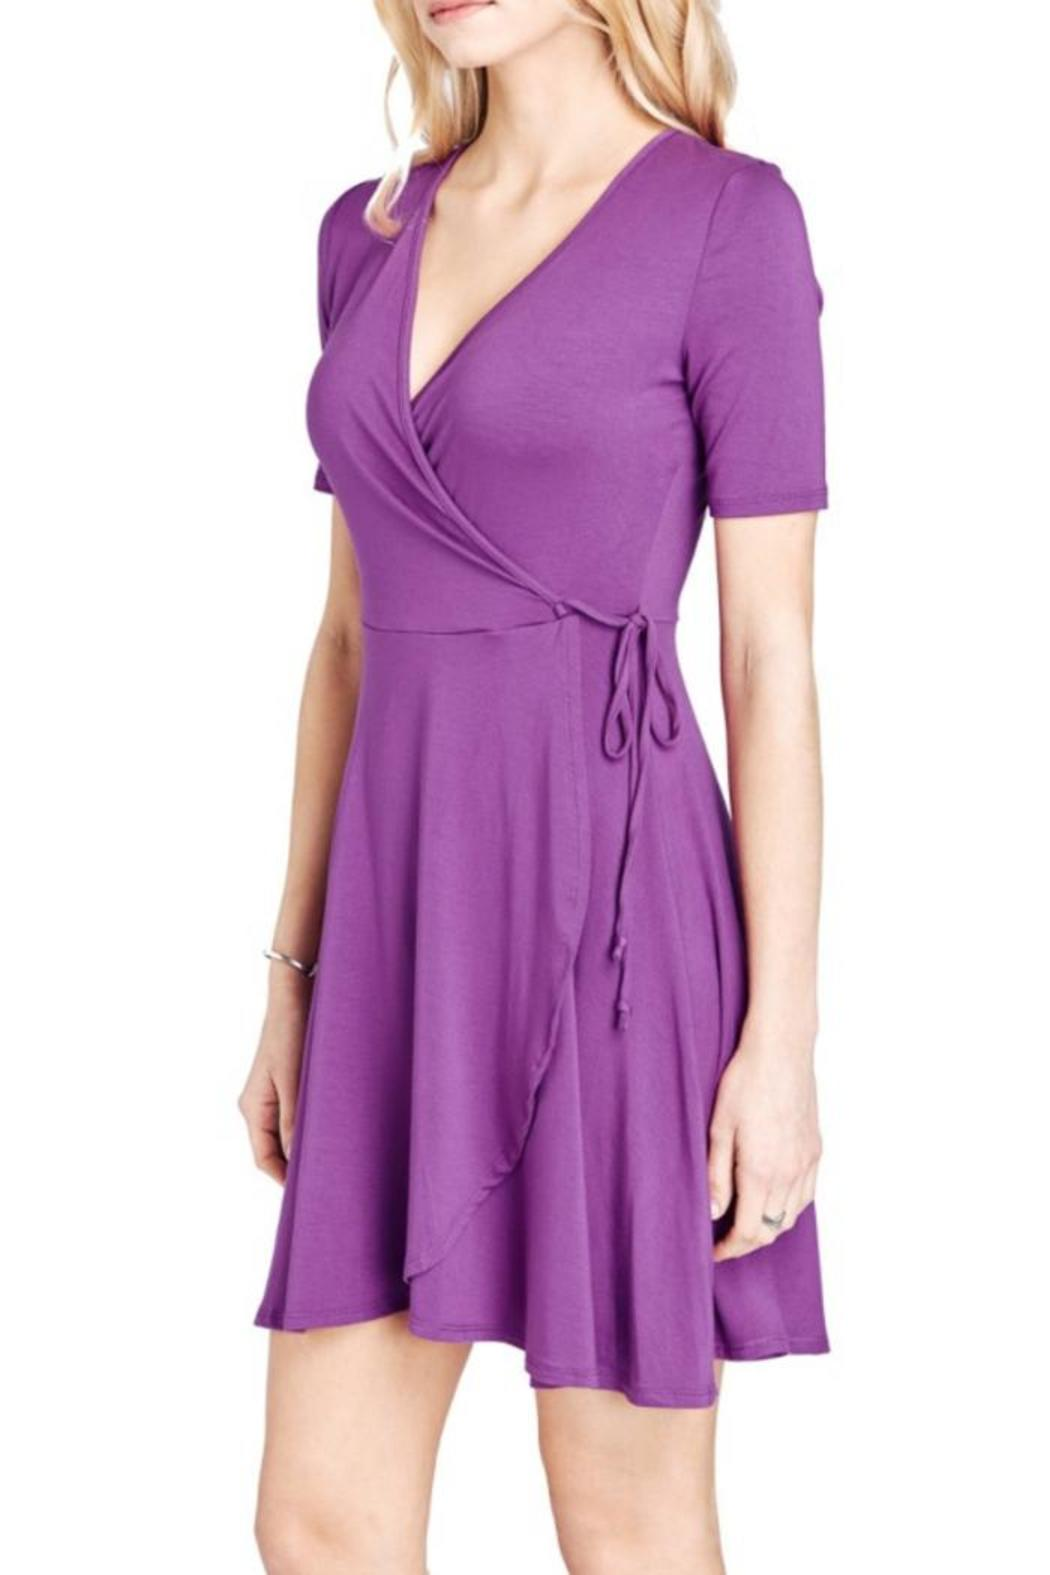 Mai Tai Purple Wrap Dress - Back Cropped Image